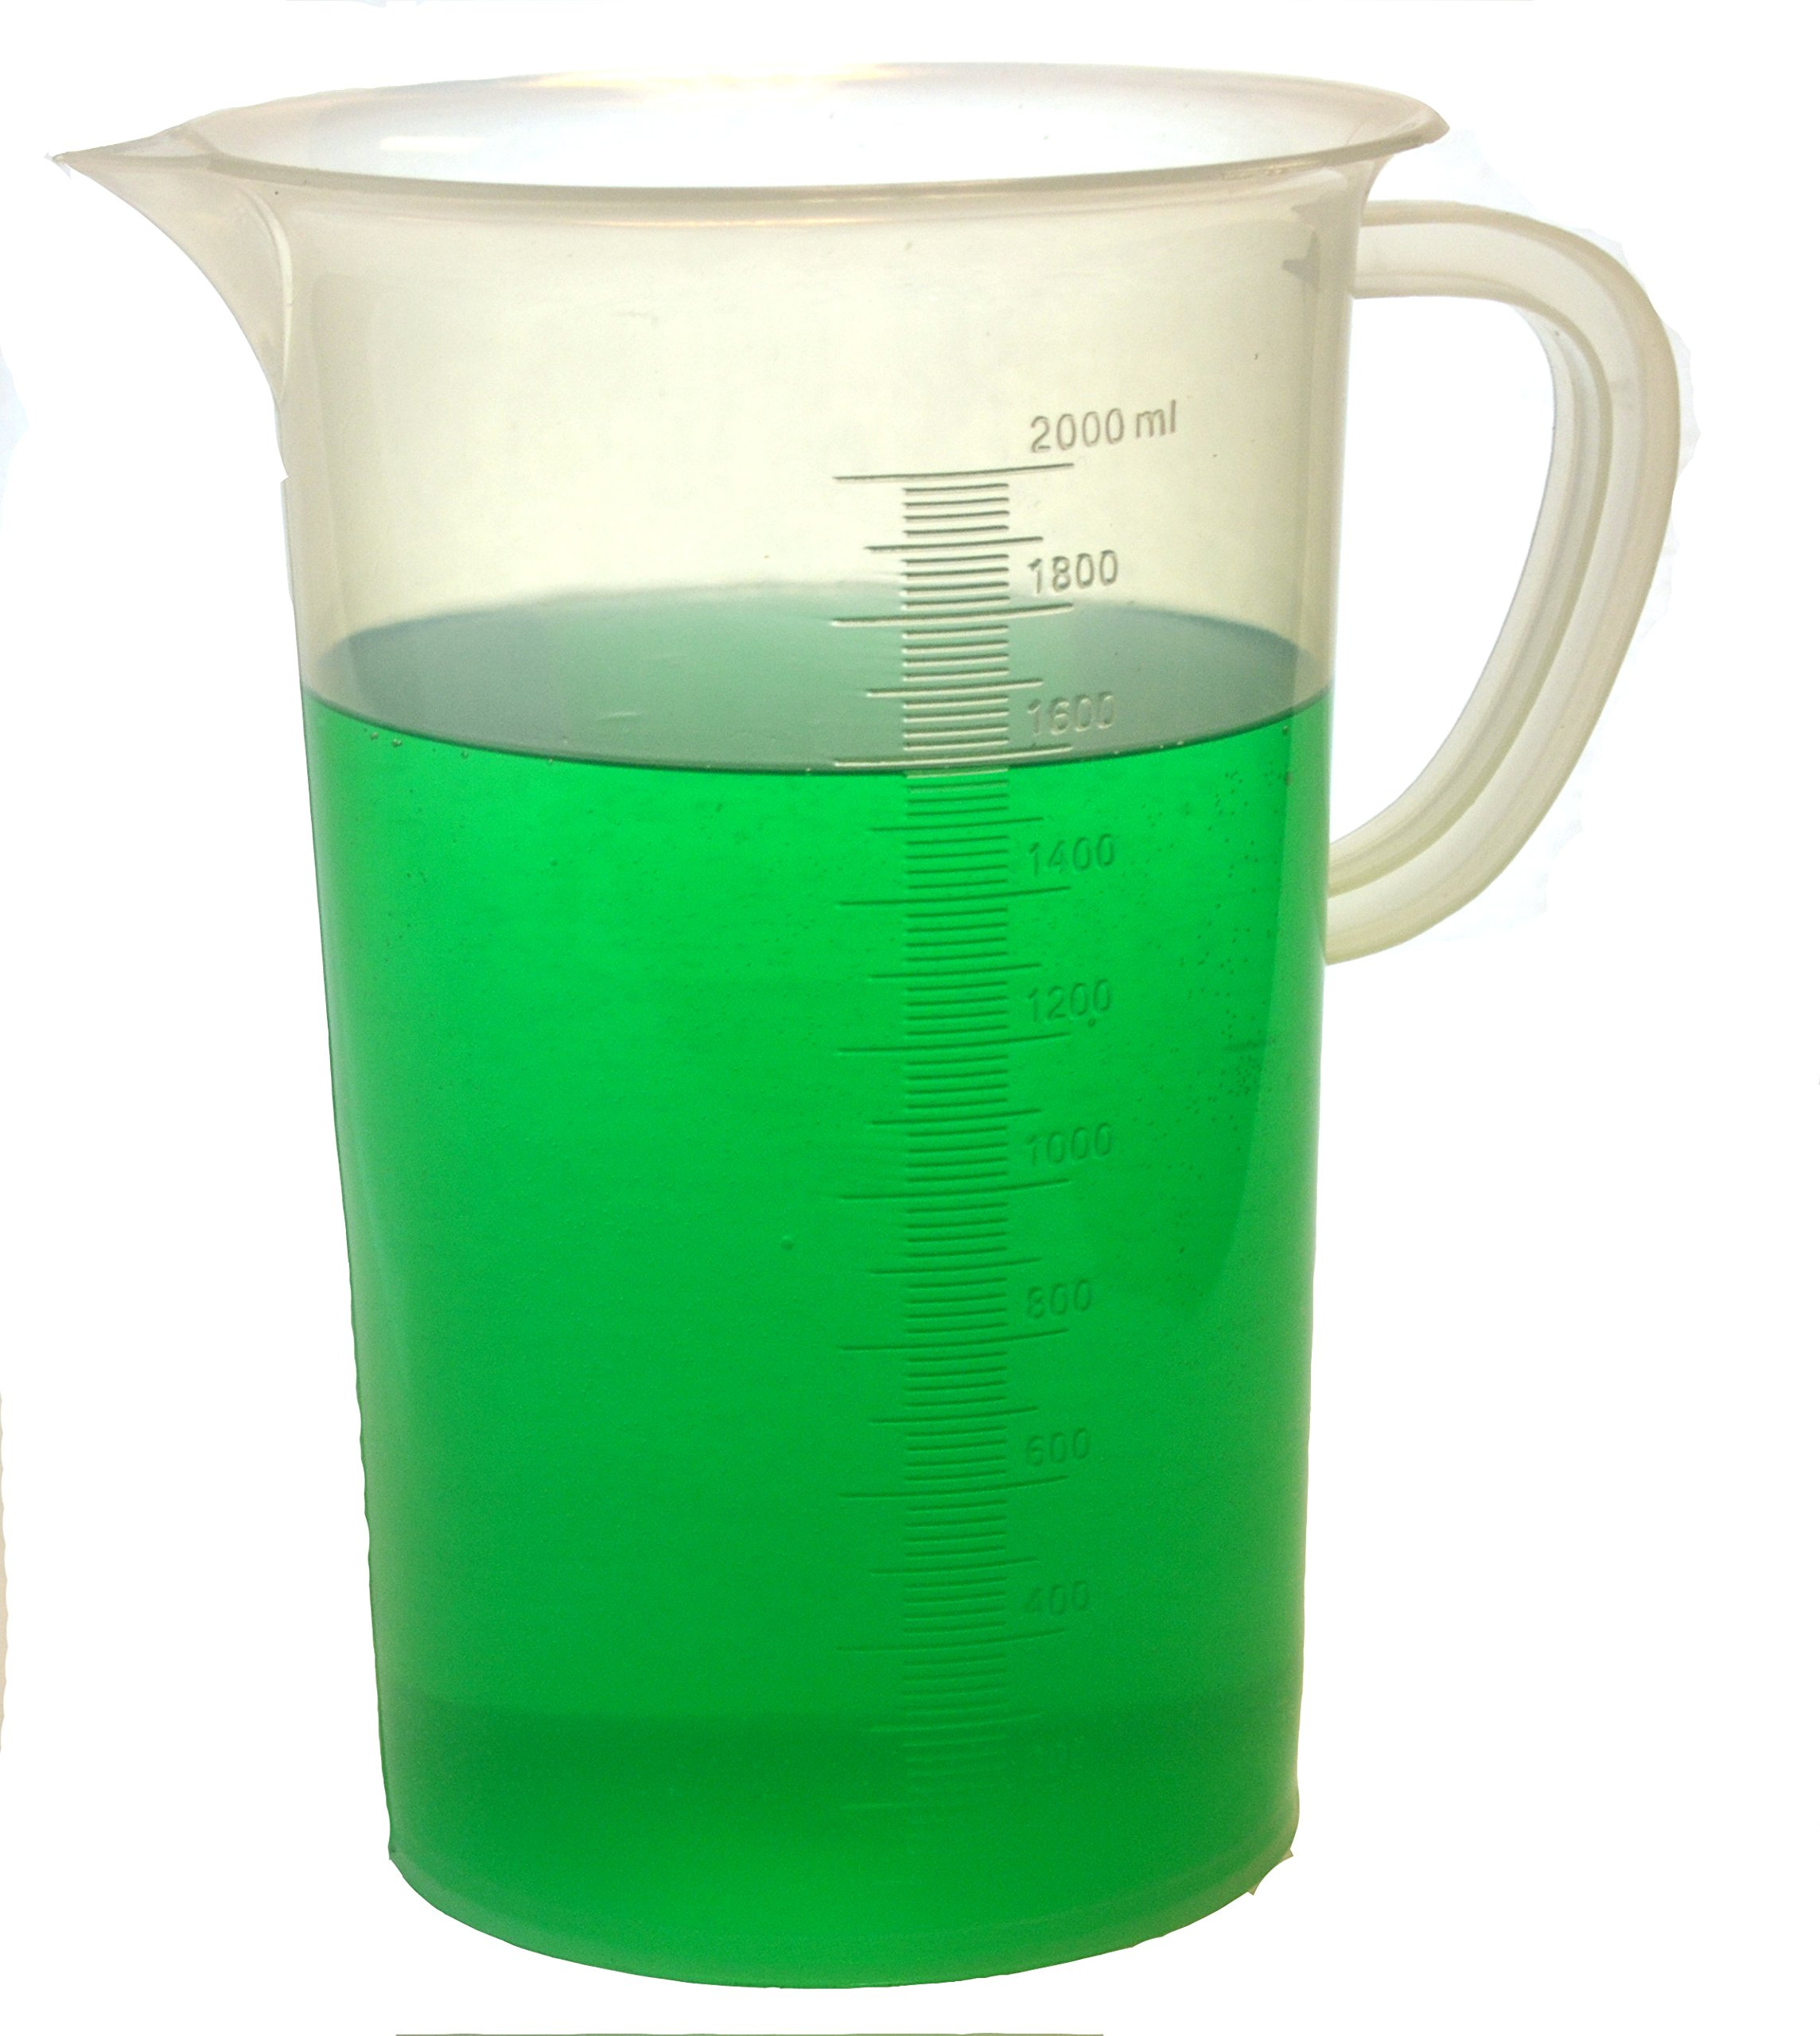 Eisco Labs 2000ml Polypropylene''Pitcher'' - Beaker with Handle and Spout, 20ml Graduations by EISCO